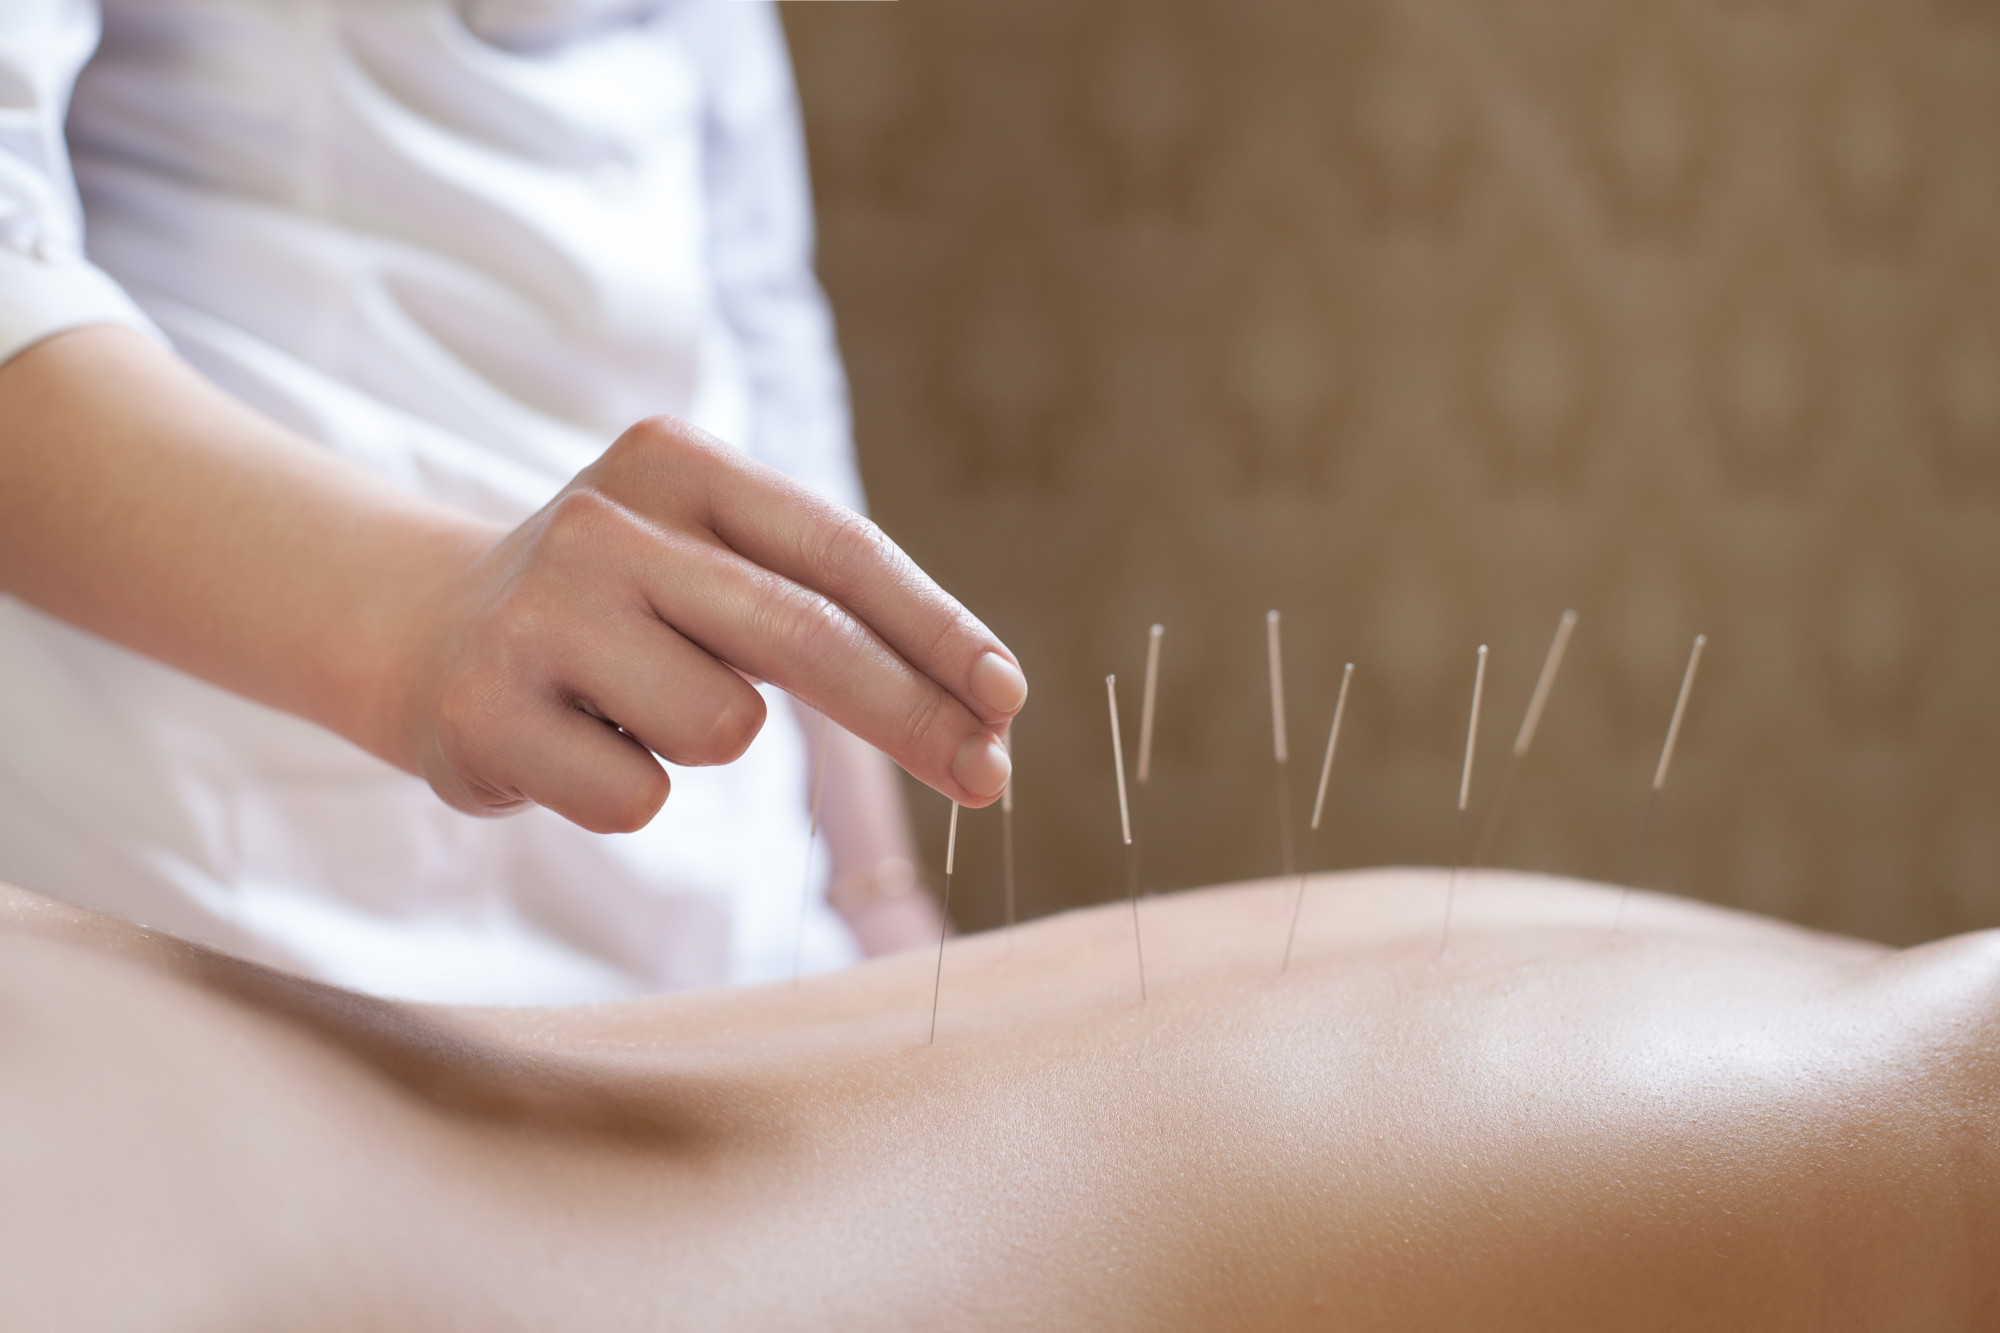 Acupuncture Procedure in Progress